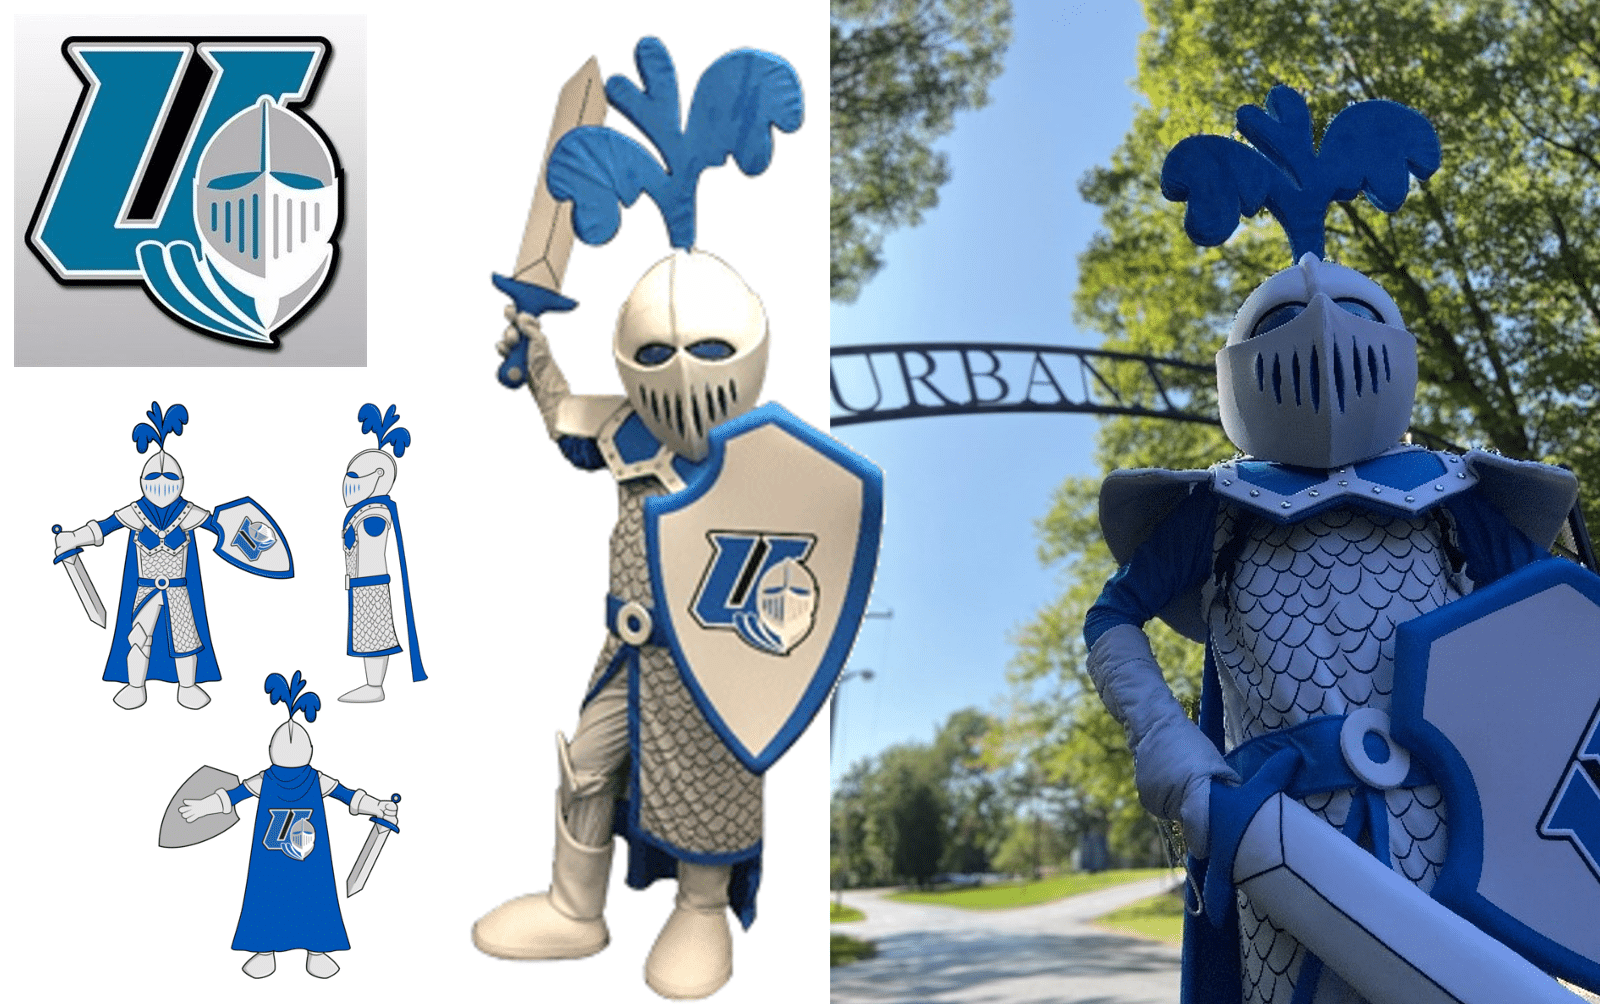 Custom-Mascot-Costume-Knight-Urbana-University-by-Promo-Bears